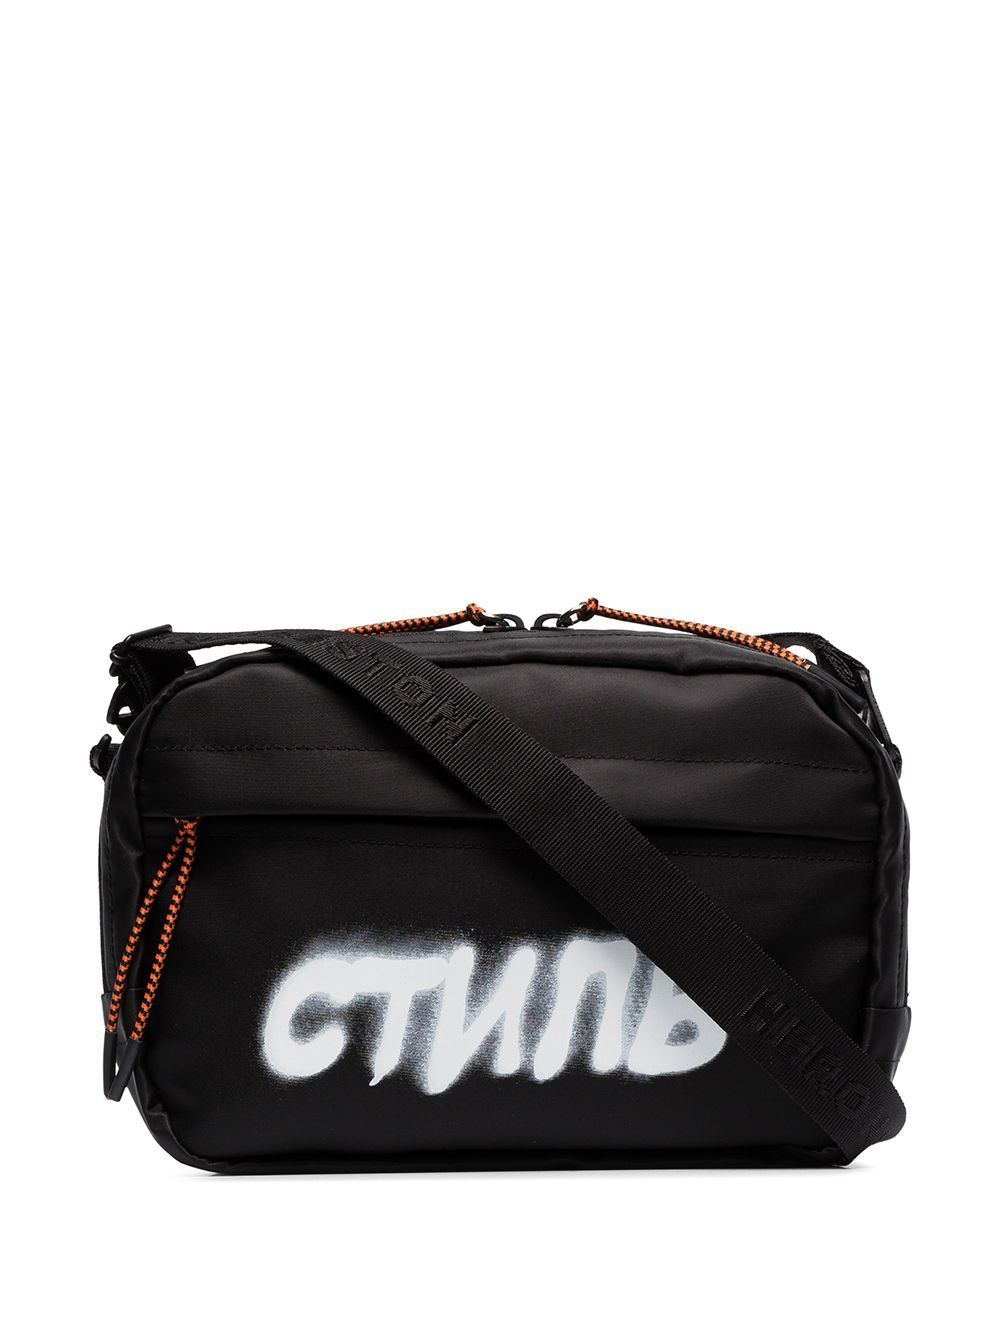 HERON PRESTON CTNMB spray print belt bag Black - Maison De Fashion